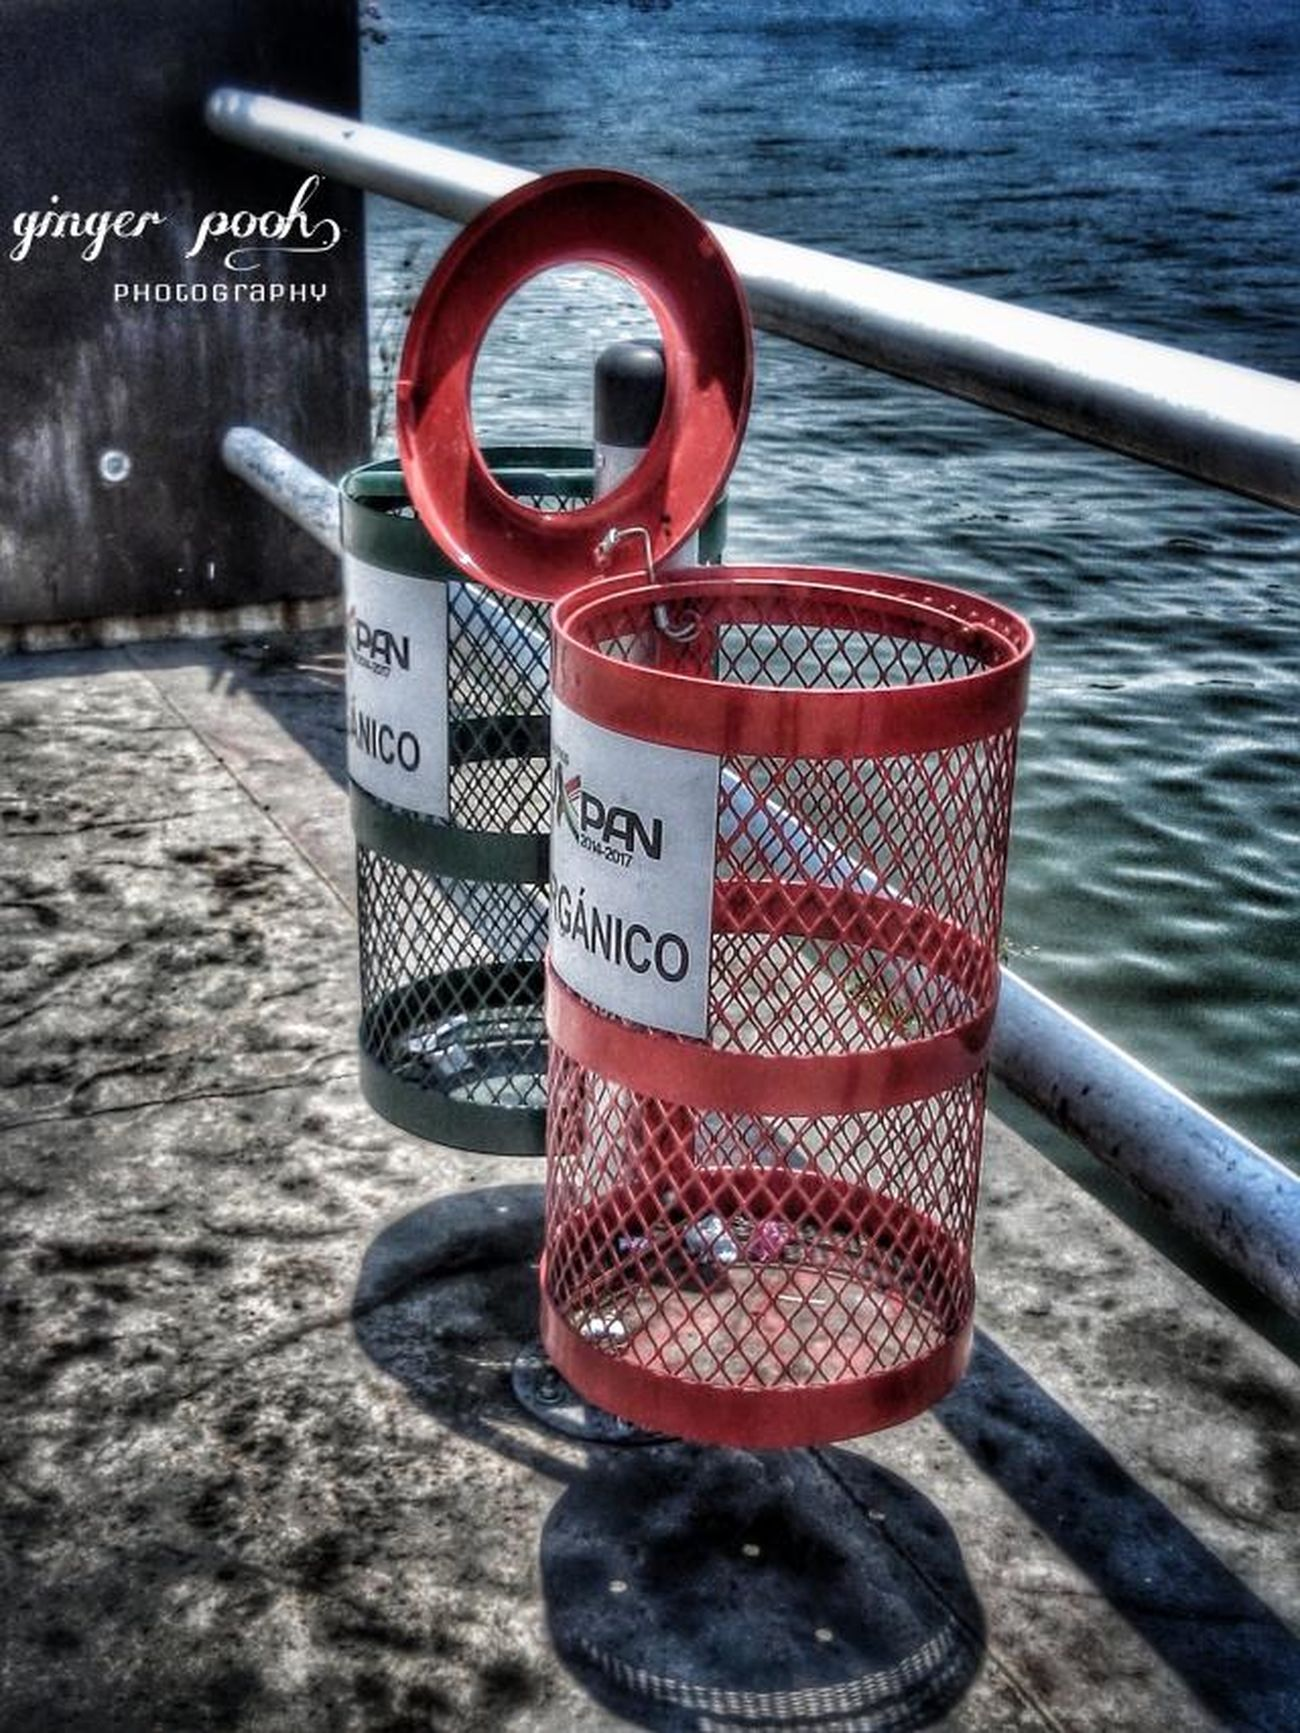 wastebaskets Eye Em Best Shots Eyem Best Edits Eyem Nature Lover Photography